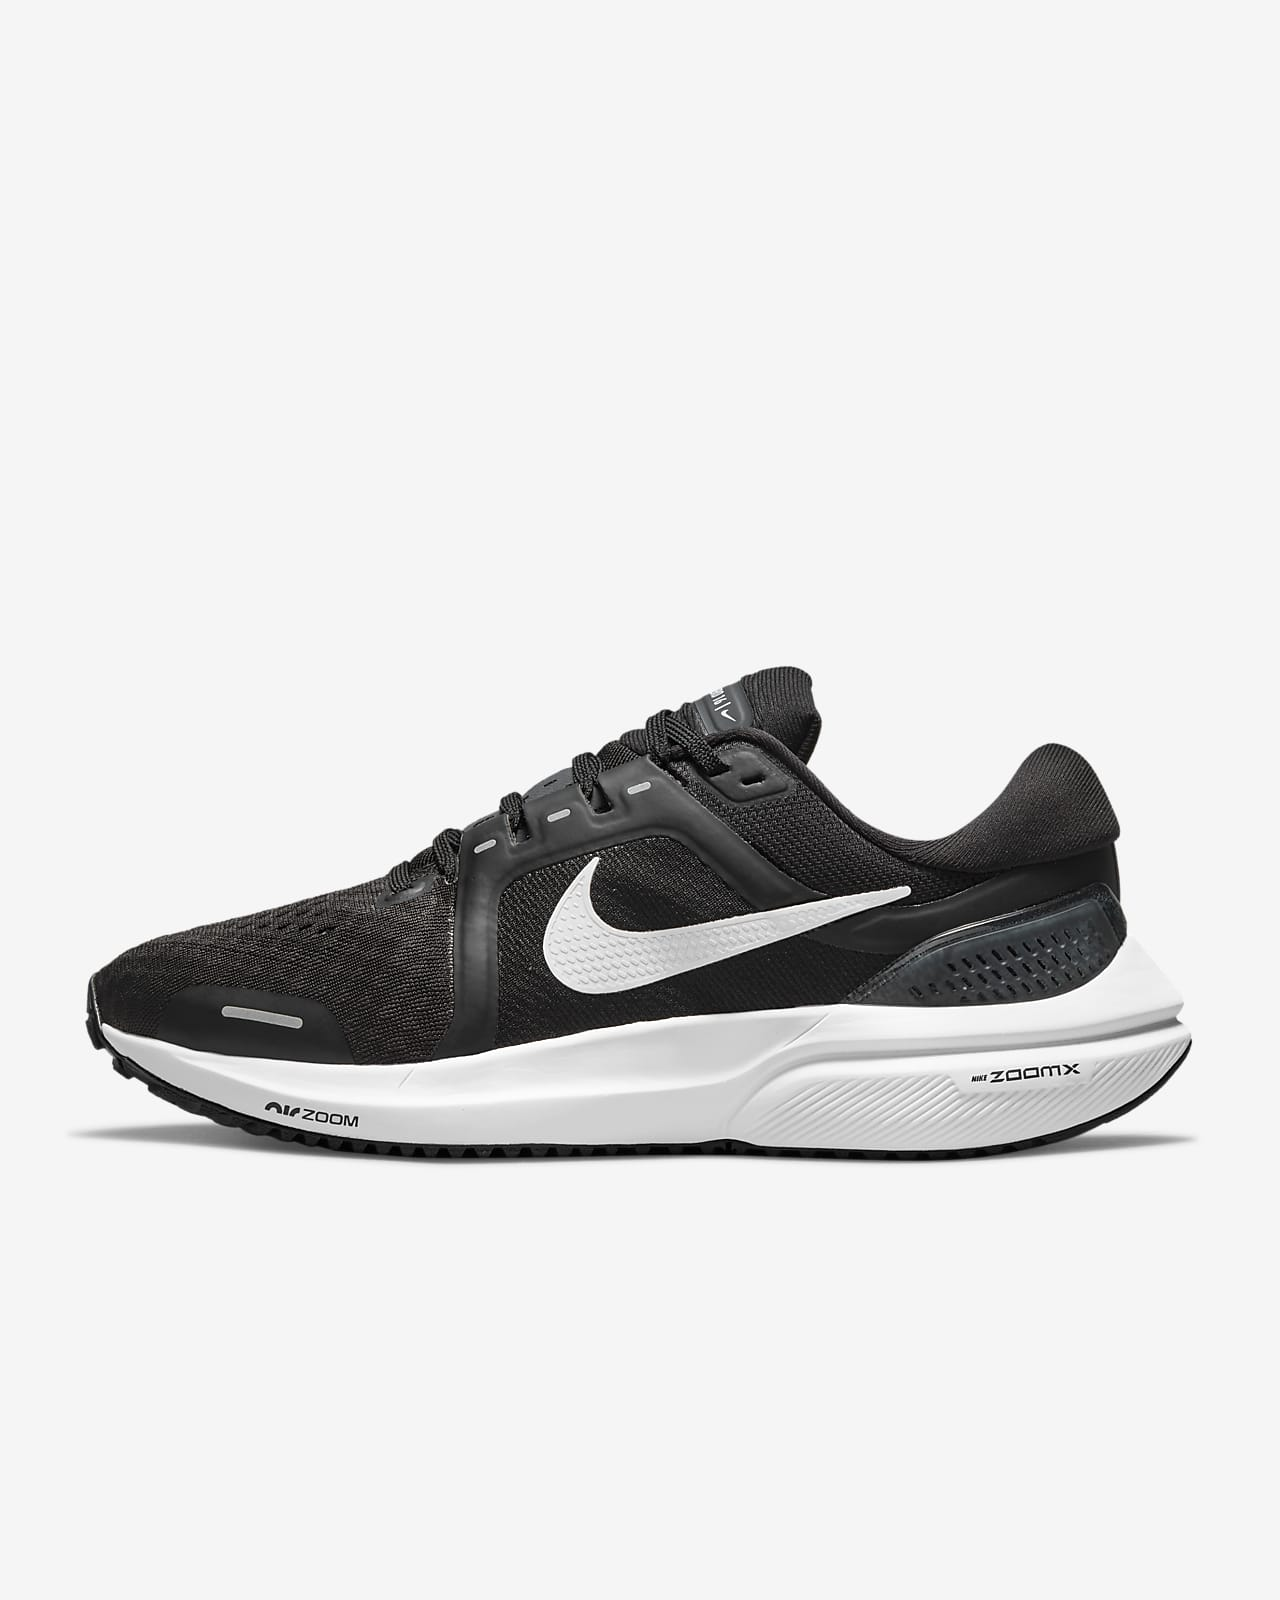 Nike Air Zoom Vomero 16 Women's Road Running Shoes (Wide)